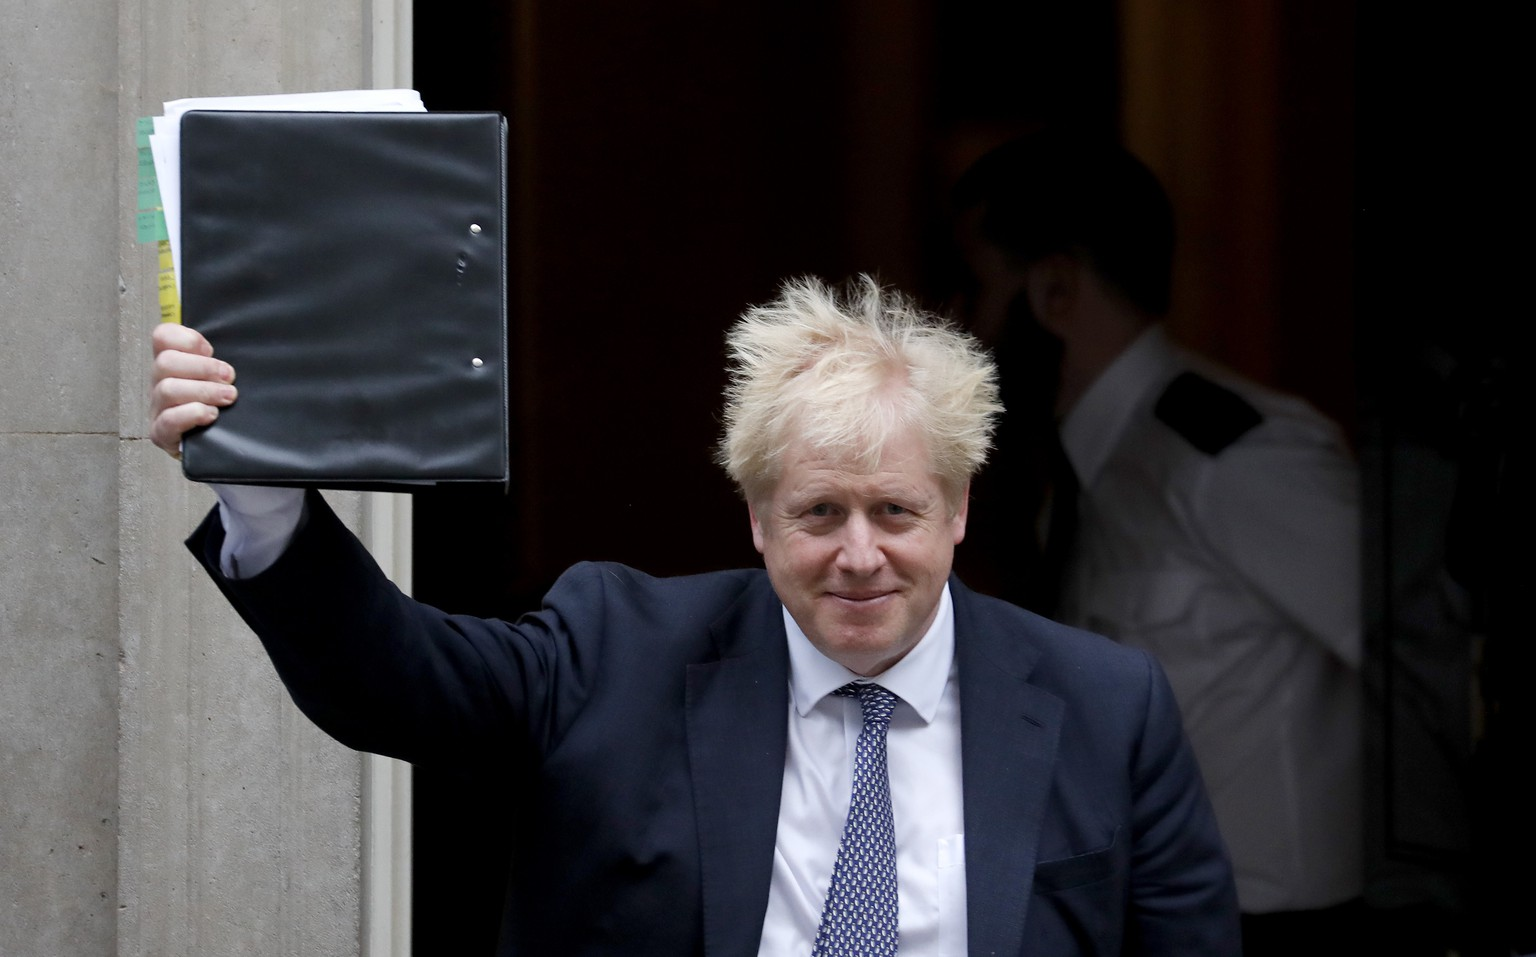 Britain's Prime Minister Boris Johnson leaves 10 Downing Street to attend the weekly Prime Ministers' Questions session, in parliament in London, Wednesday, Oct. 23, 2019. (AP Photo/Frank Augstein)